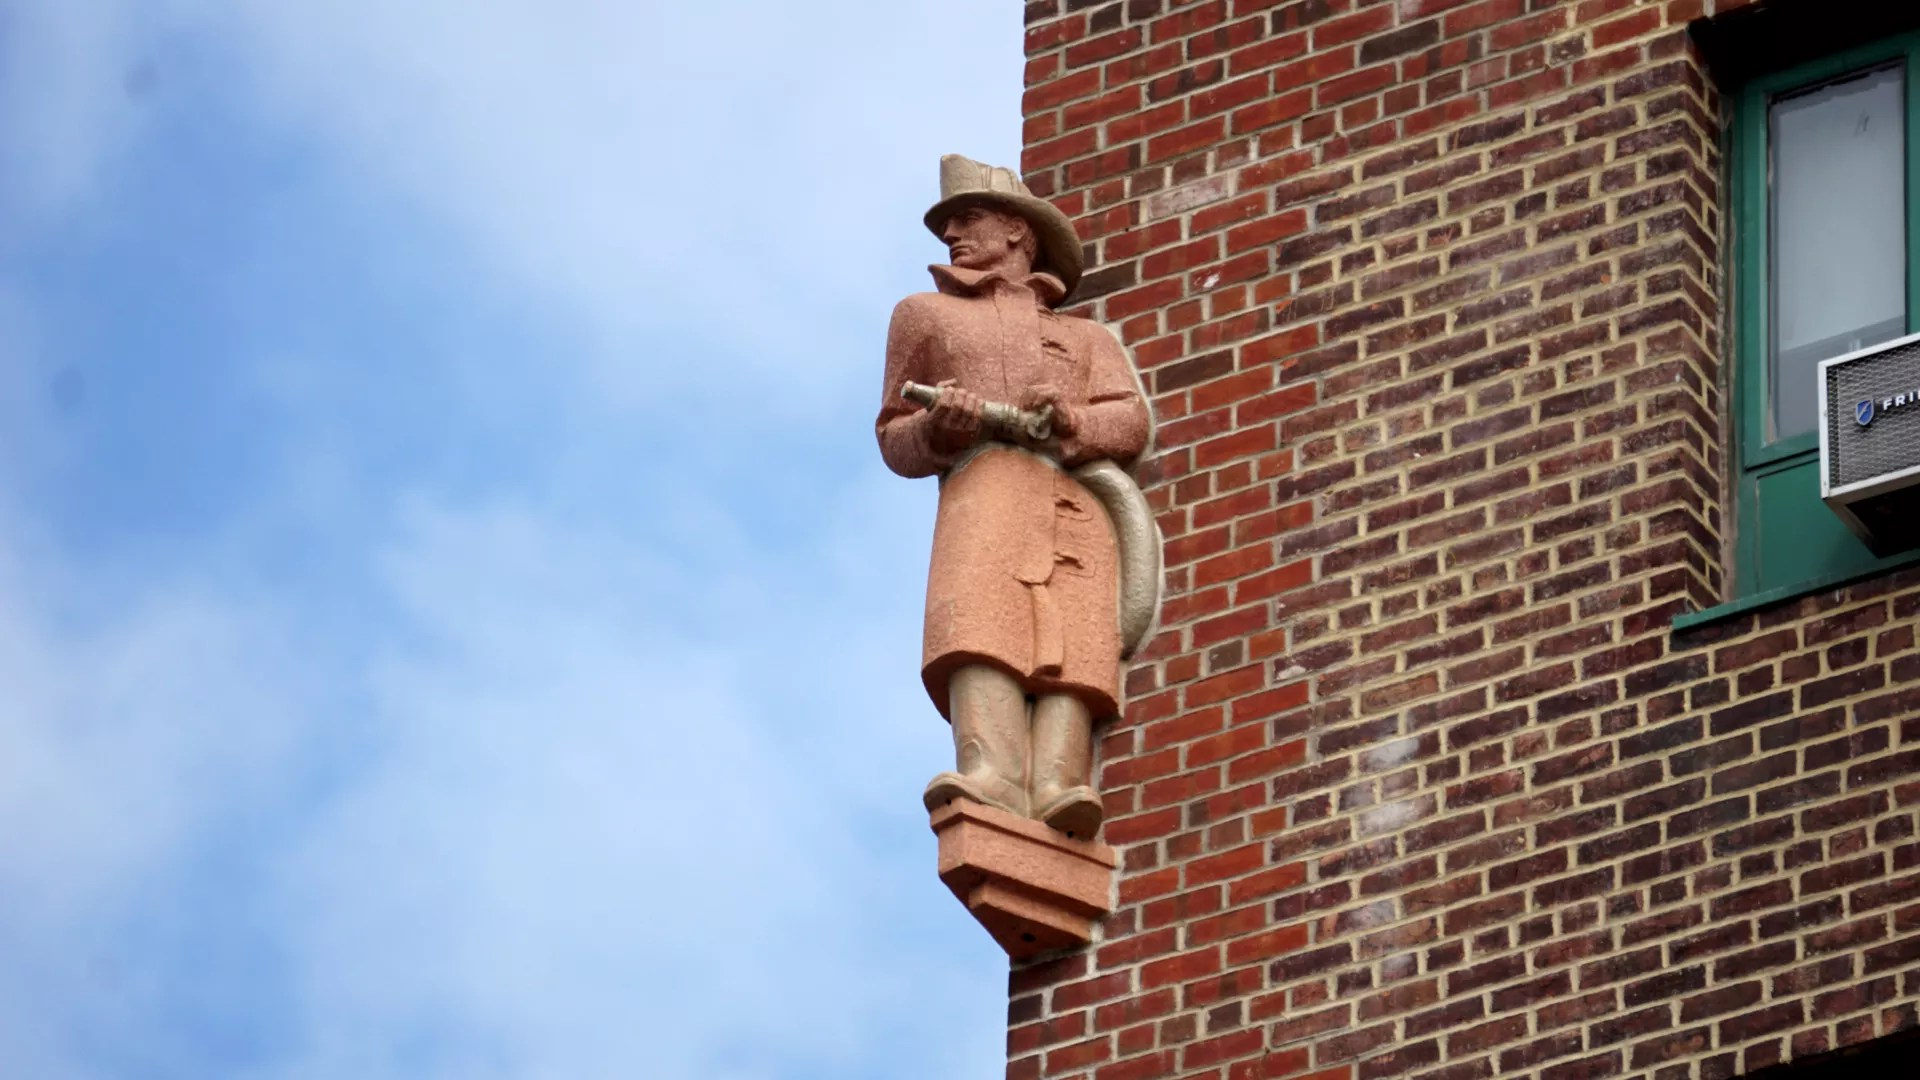 Iconic Parkchester Statues Are Disappearing